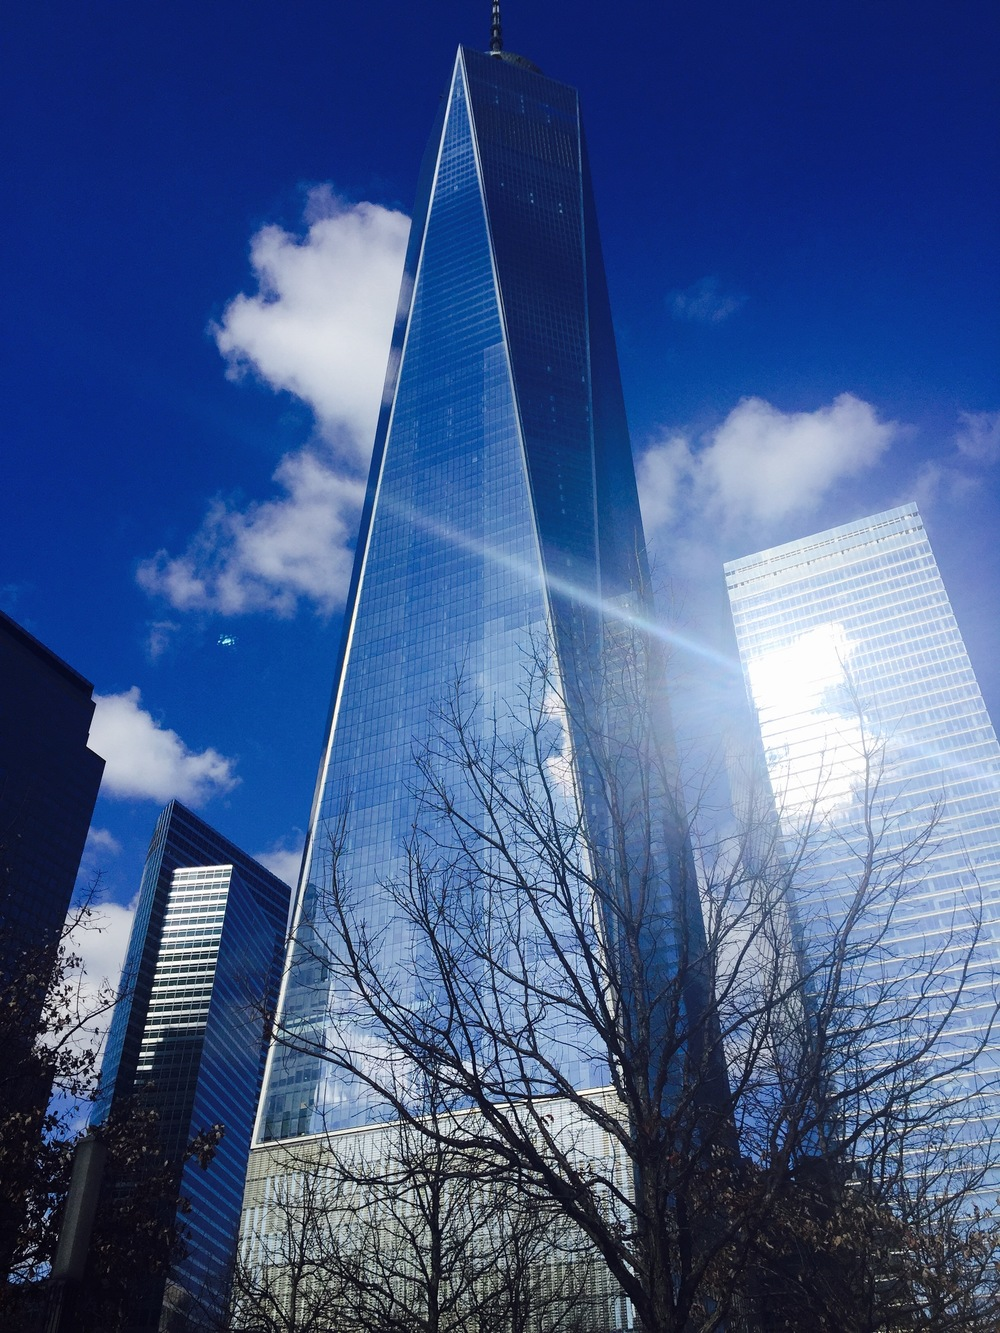 The Freedom Tower (One World Trade Center).